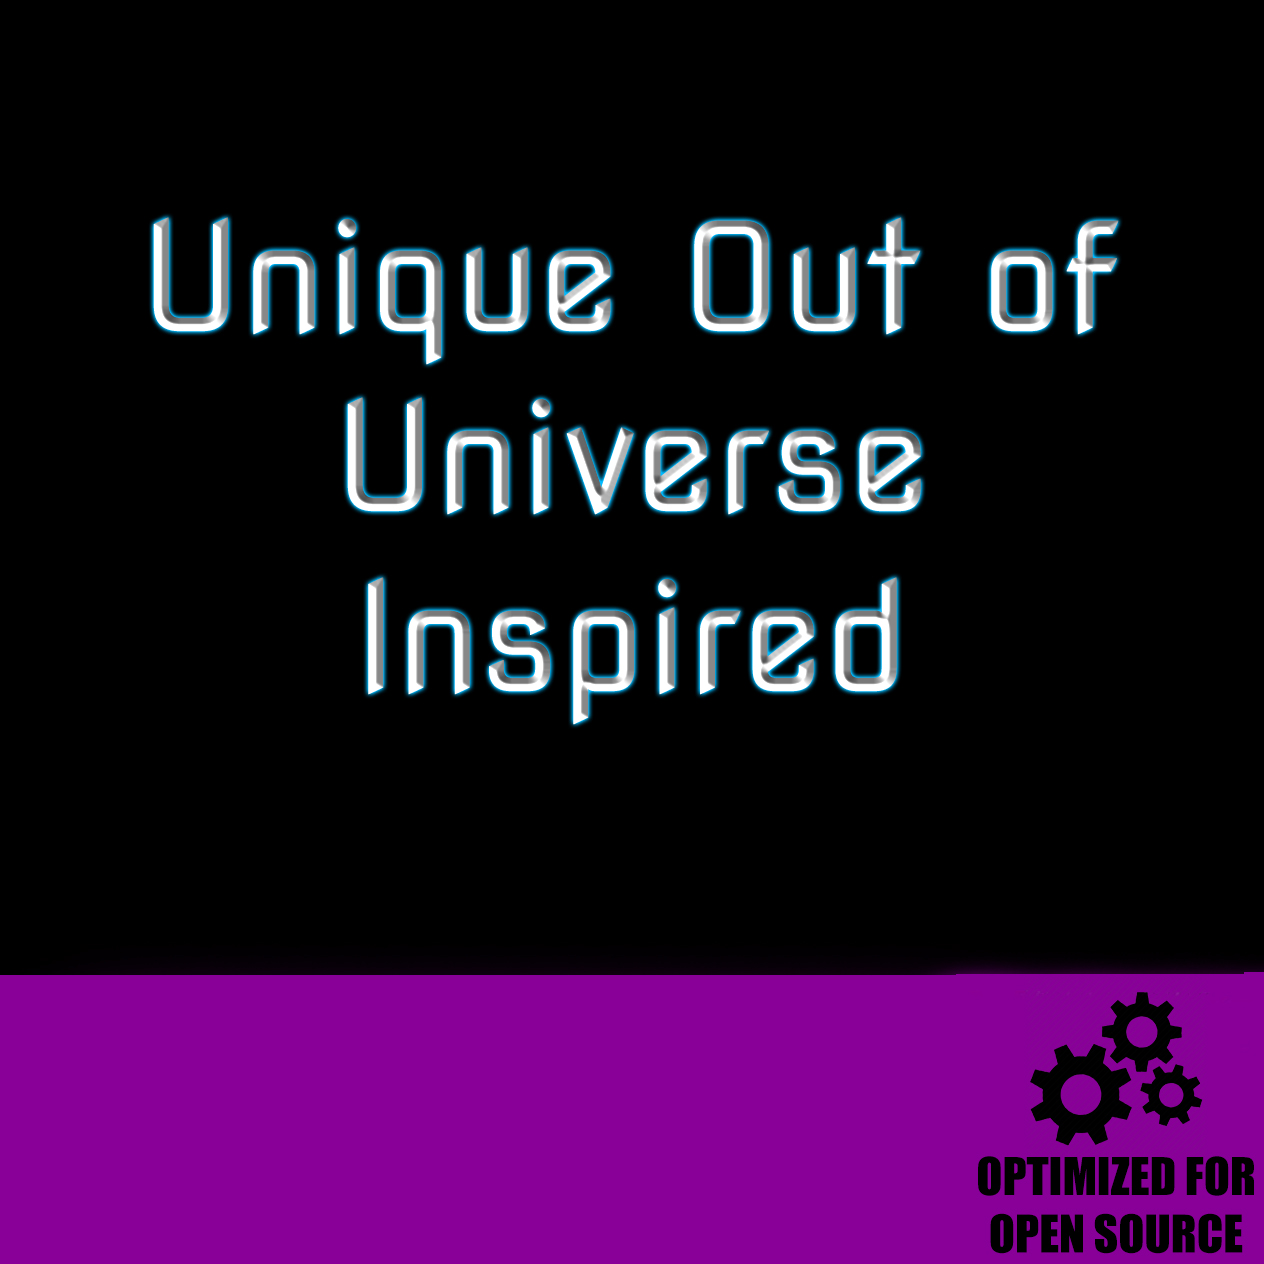 Unique Out Of Universe Inspired for Open Source